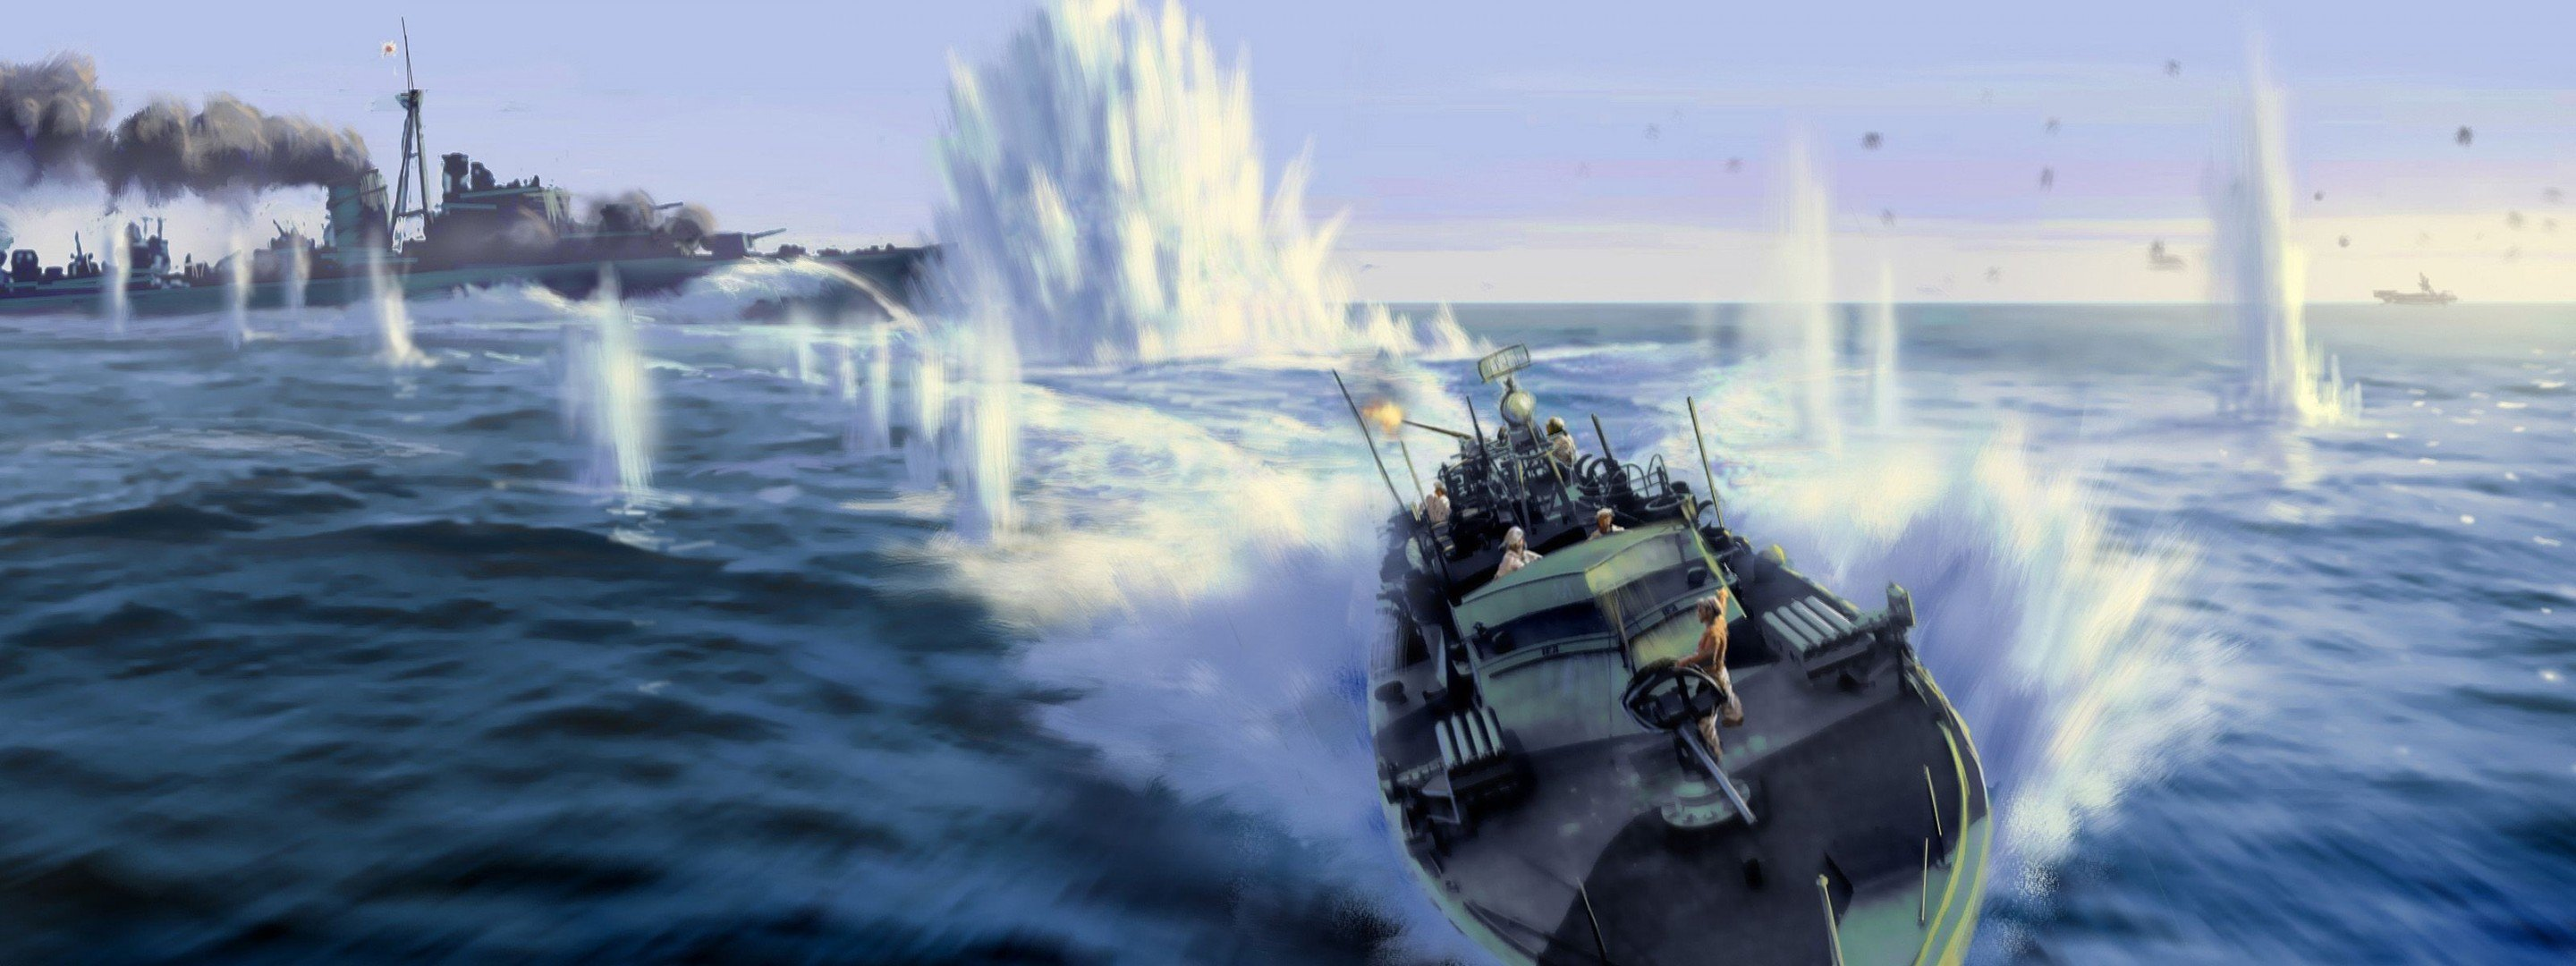 boat-fight-shooting-explosions-war.jpg